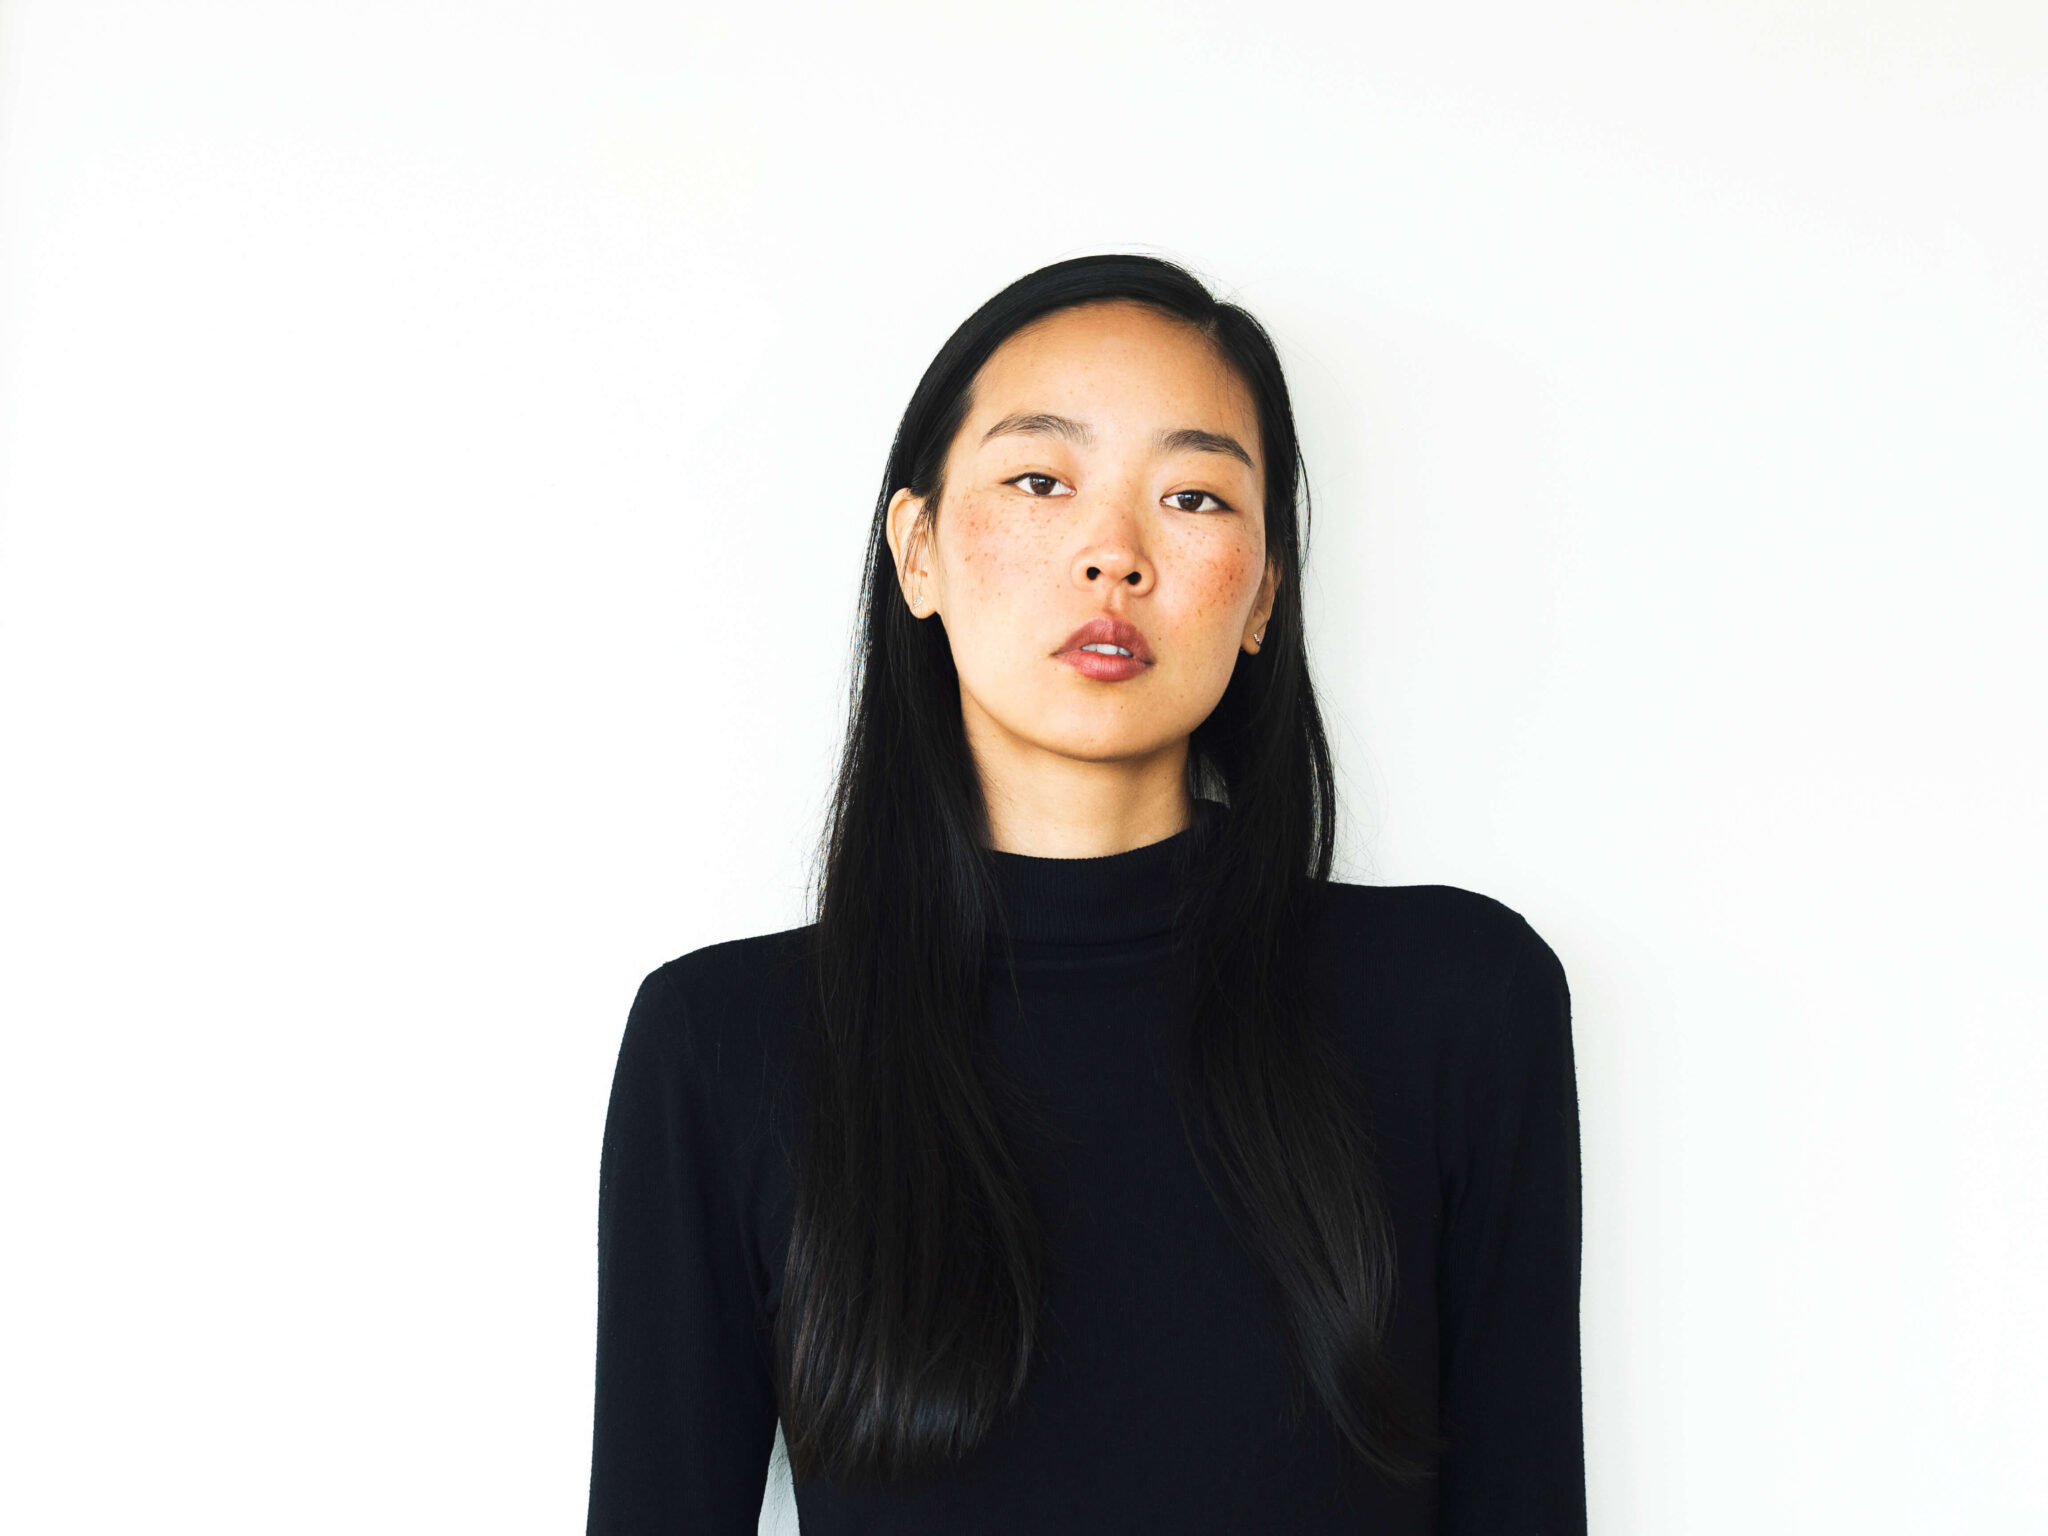 model test on white wall